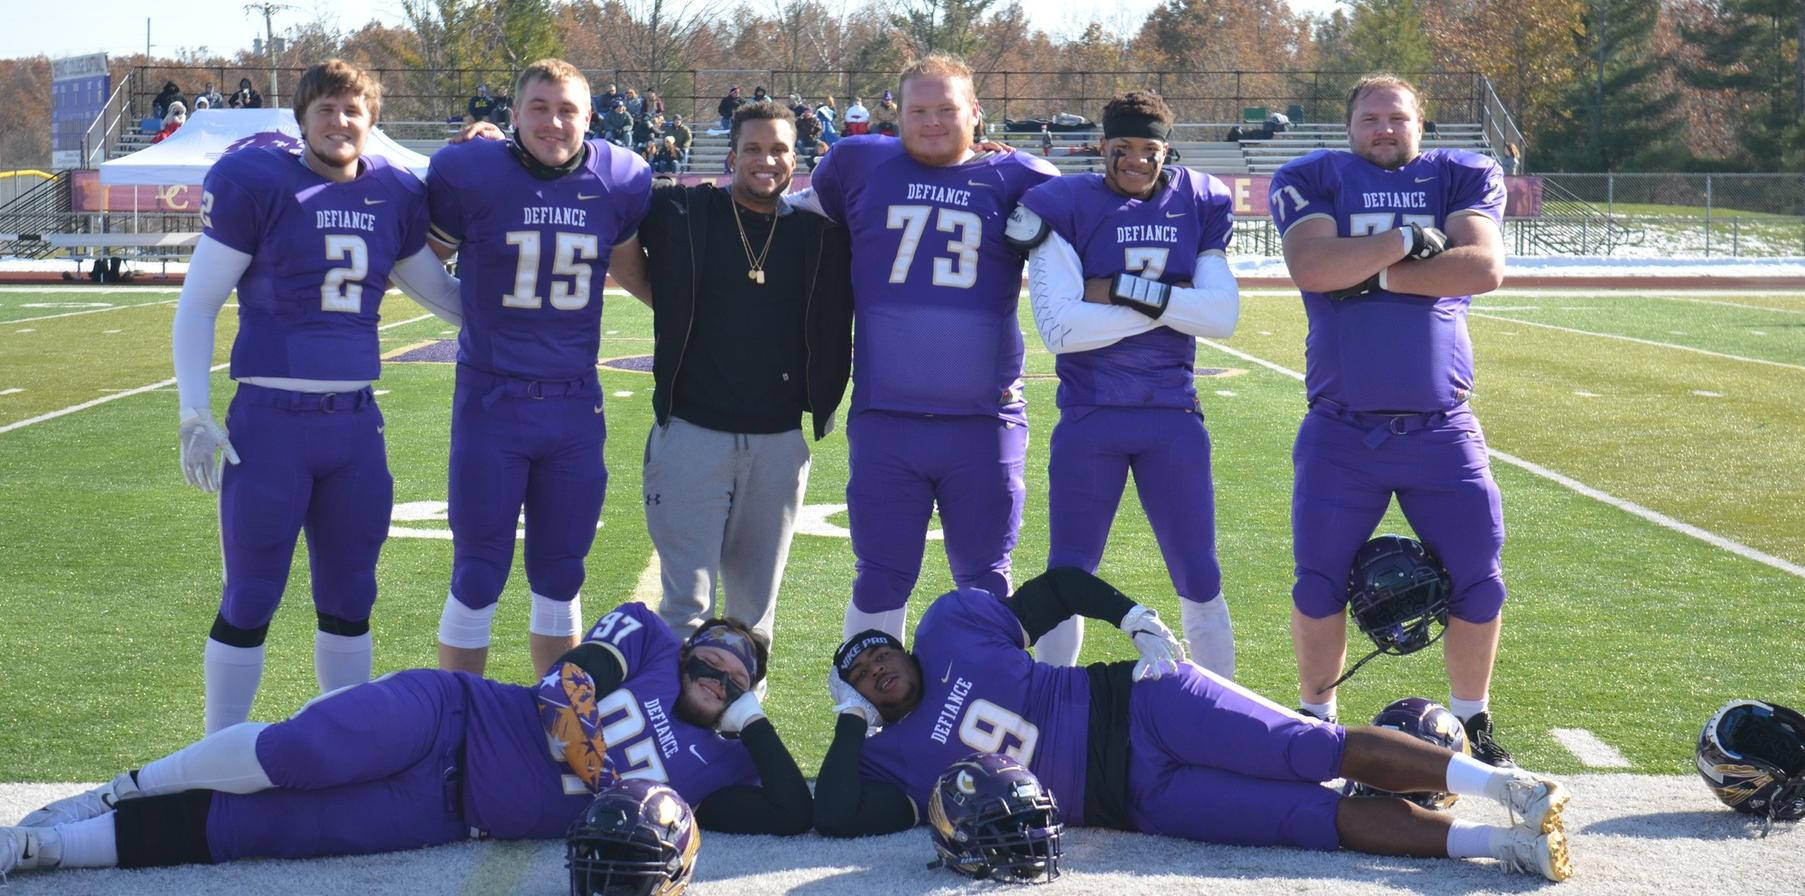 The Hammer returns to Defiance as football celebrates a Senior Day victory